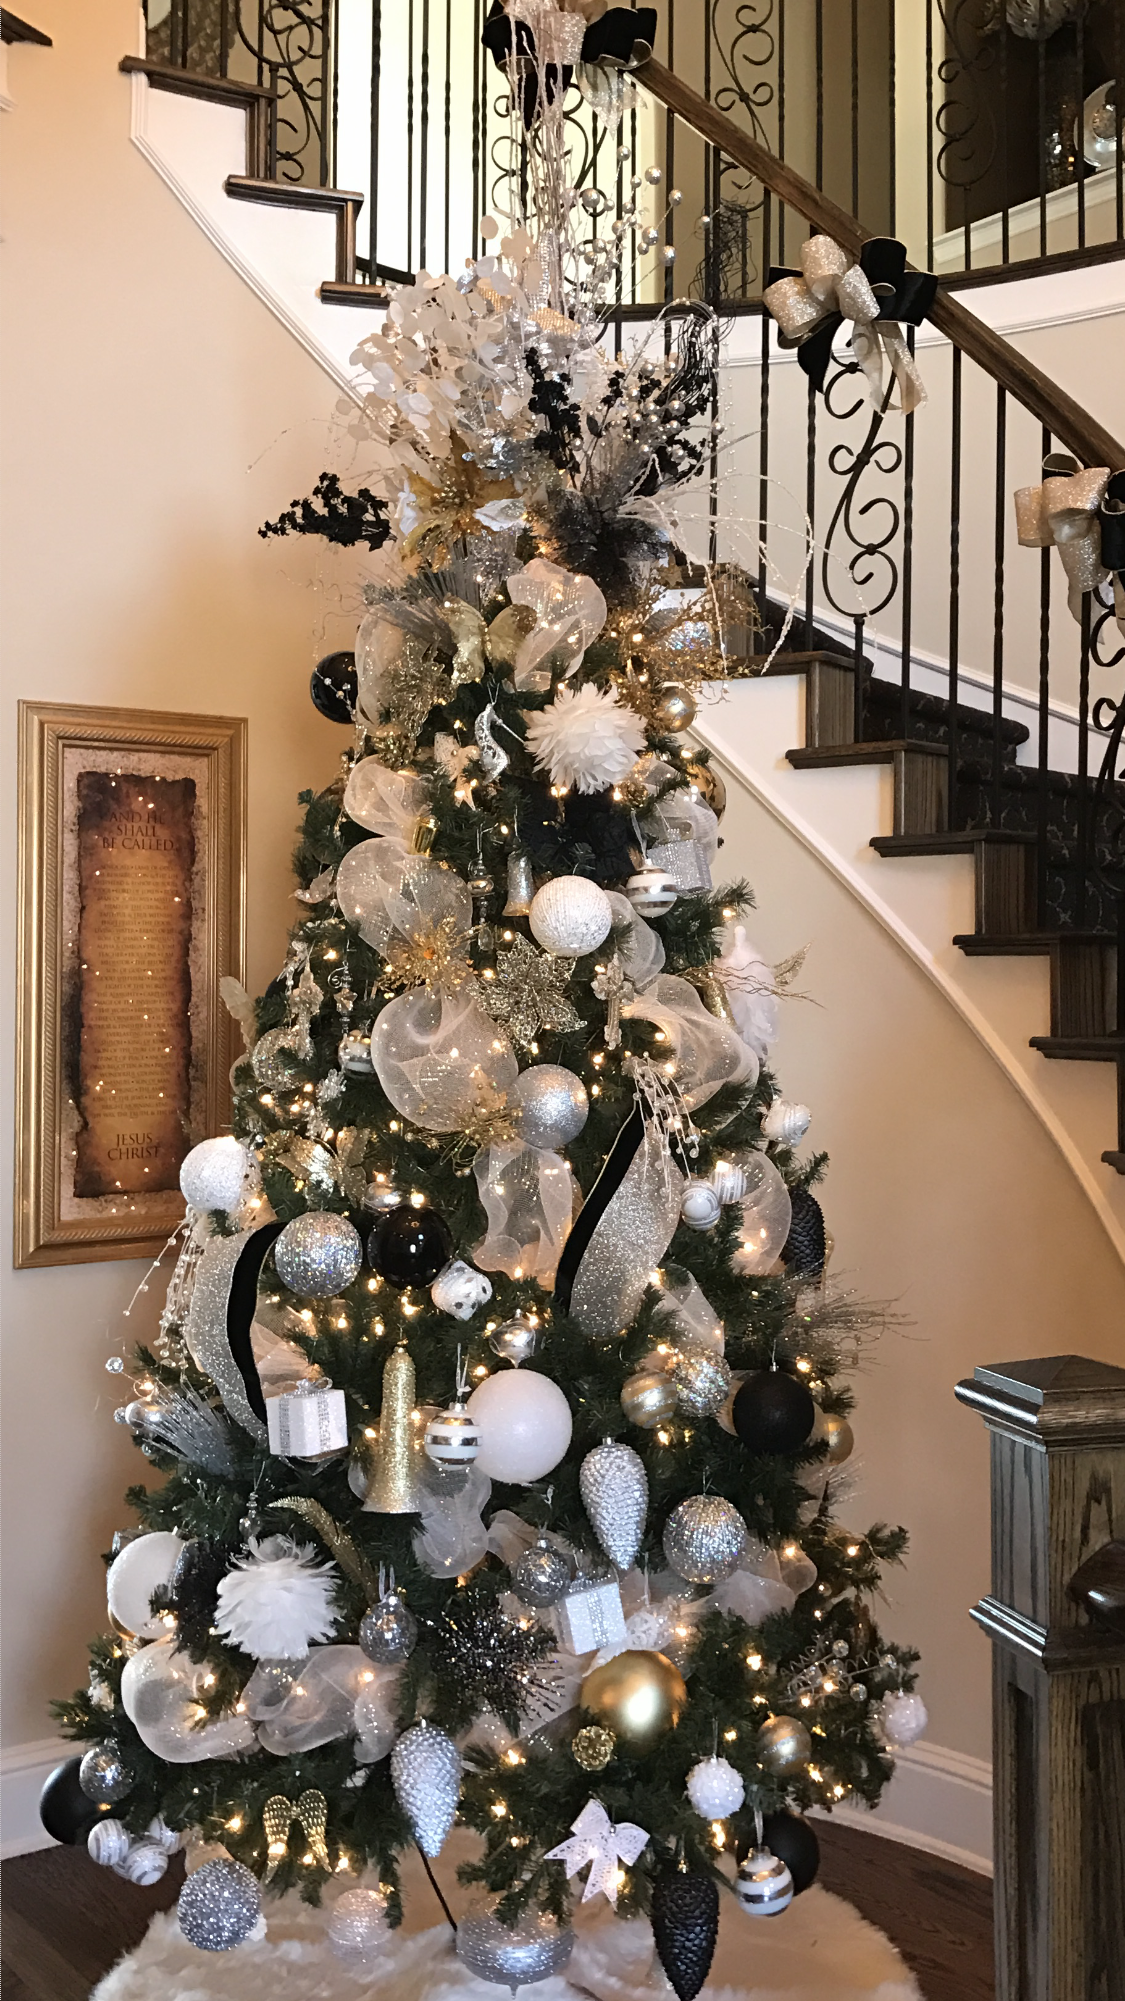 Christmas Tree 2016 Silver Gold Black And White Tree Black Christmas Decorations Gold Christmas Decorations White Christmas Tree Decorations